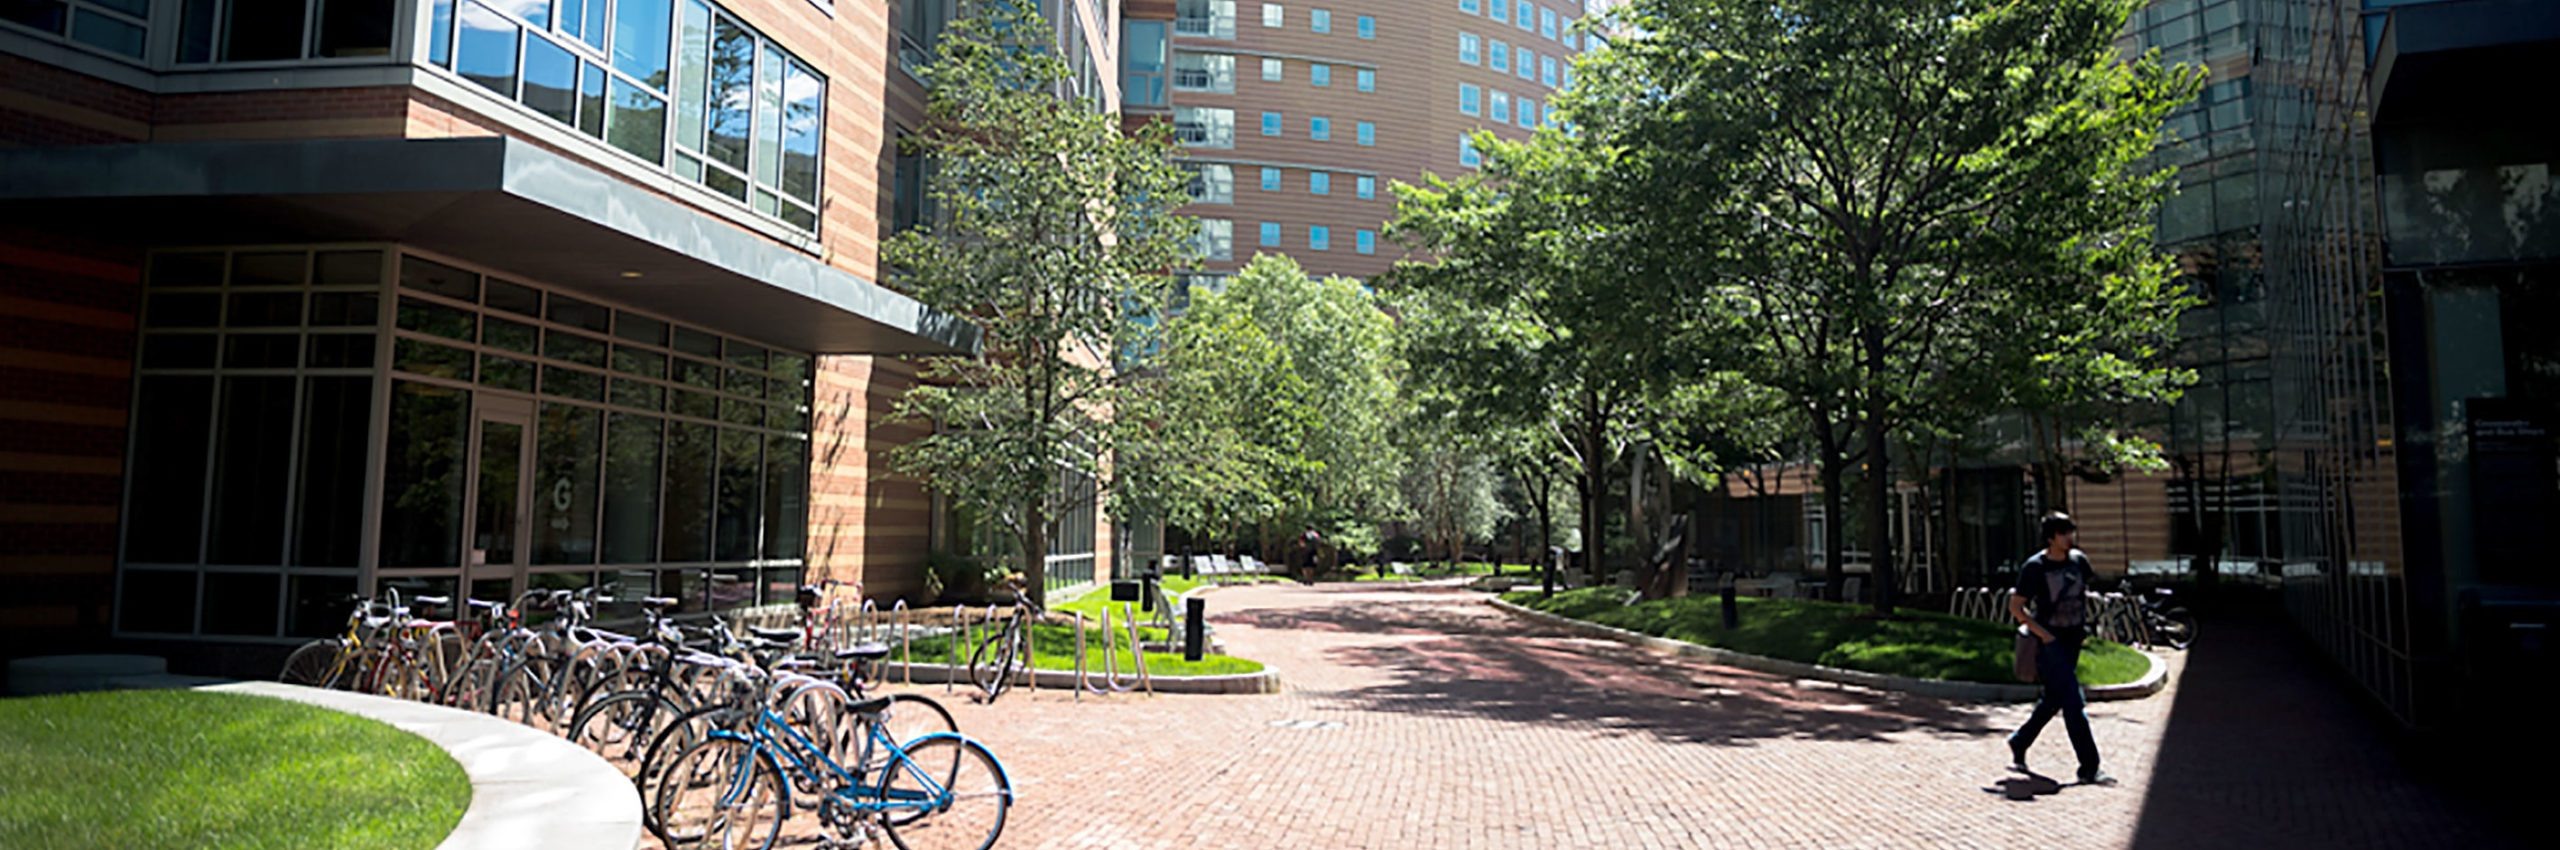 A view of West Village at Northeastern's Boston campus